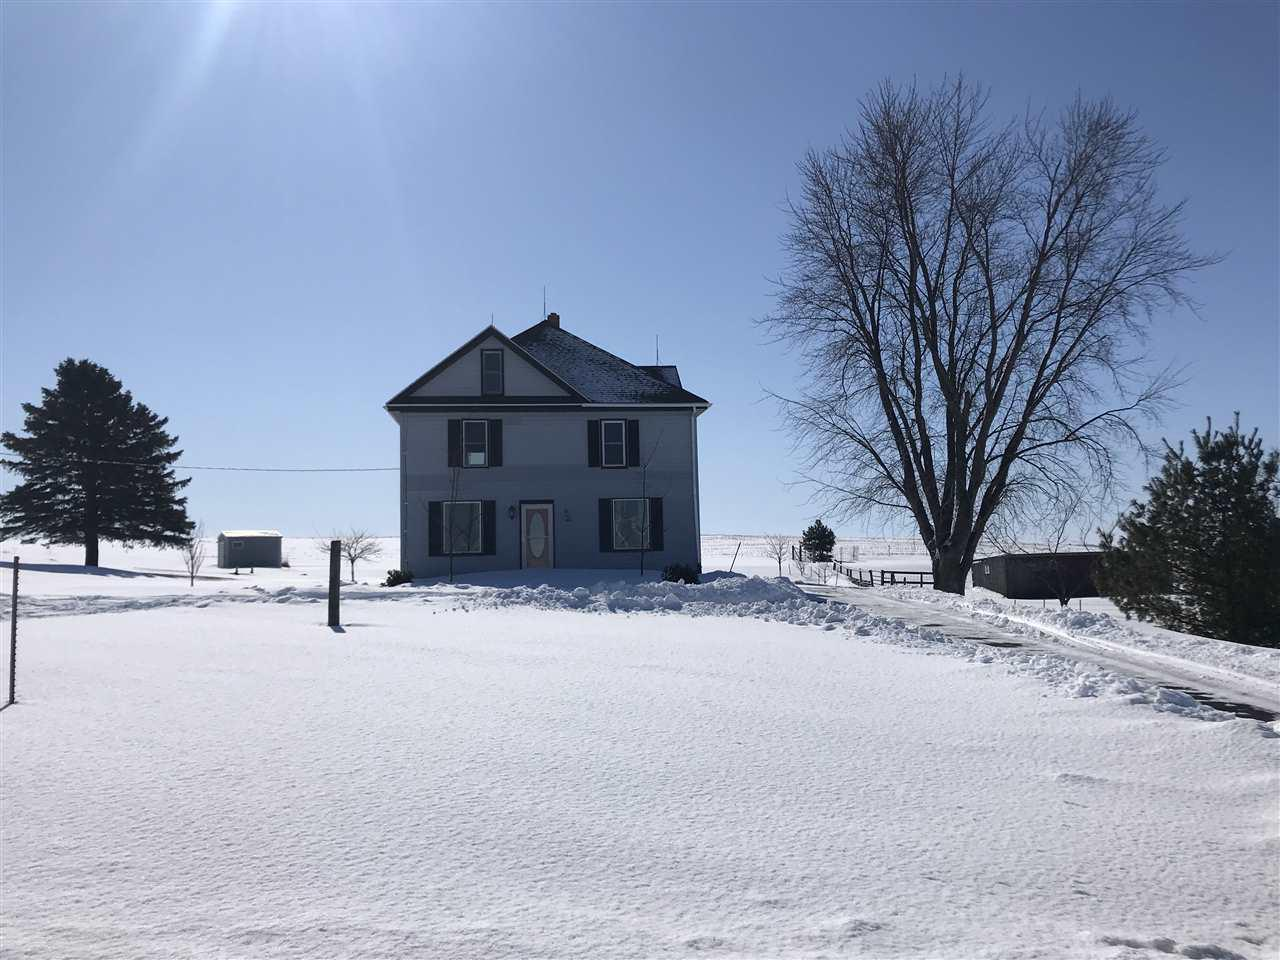 Country living! 2 acres w/panoramic views. Solid, well built 2 story home is move in ready. Very well maintained, this house needs nothing. 2 bed, 1.5 bath. More bedrooms can be added w/ a little remodeling. Full, dry basement and a walk up attic can be finished for more bedrooms, loft area or a number of possibilities. Horse stable with good fences all around. Great neighbors. Lots of room to build a garage or big shop.